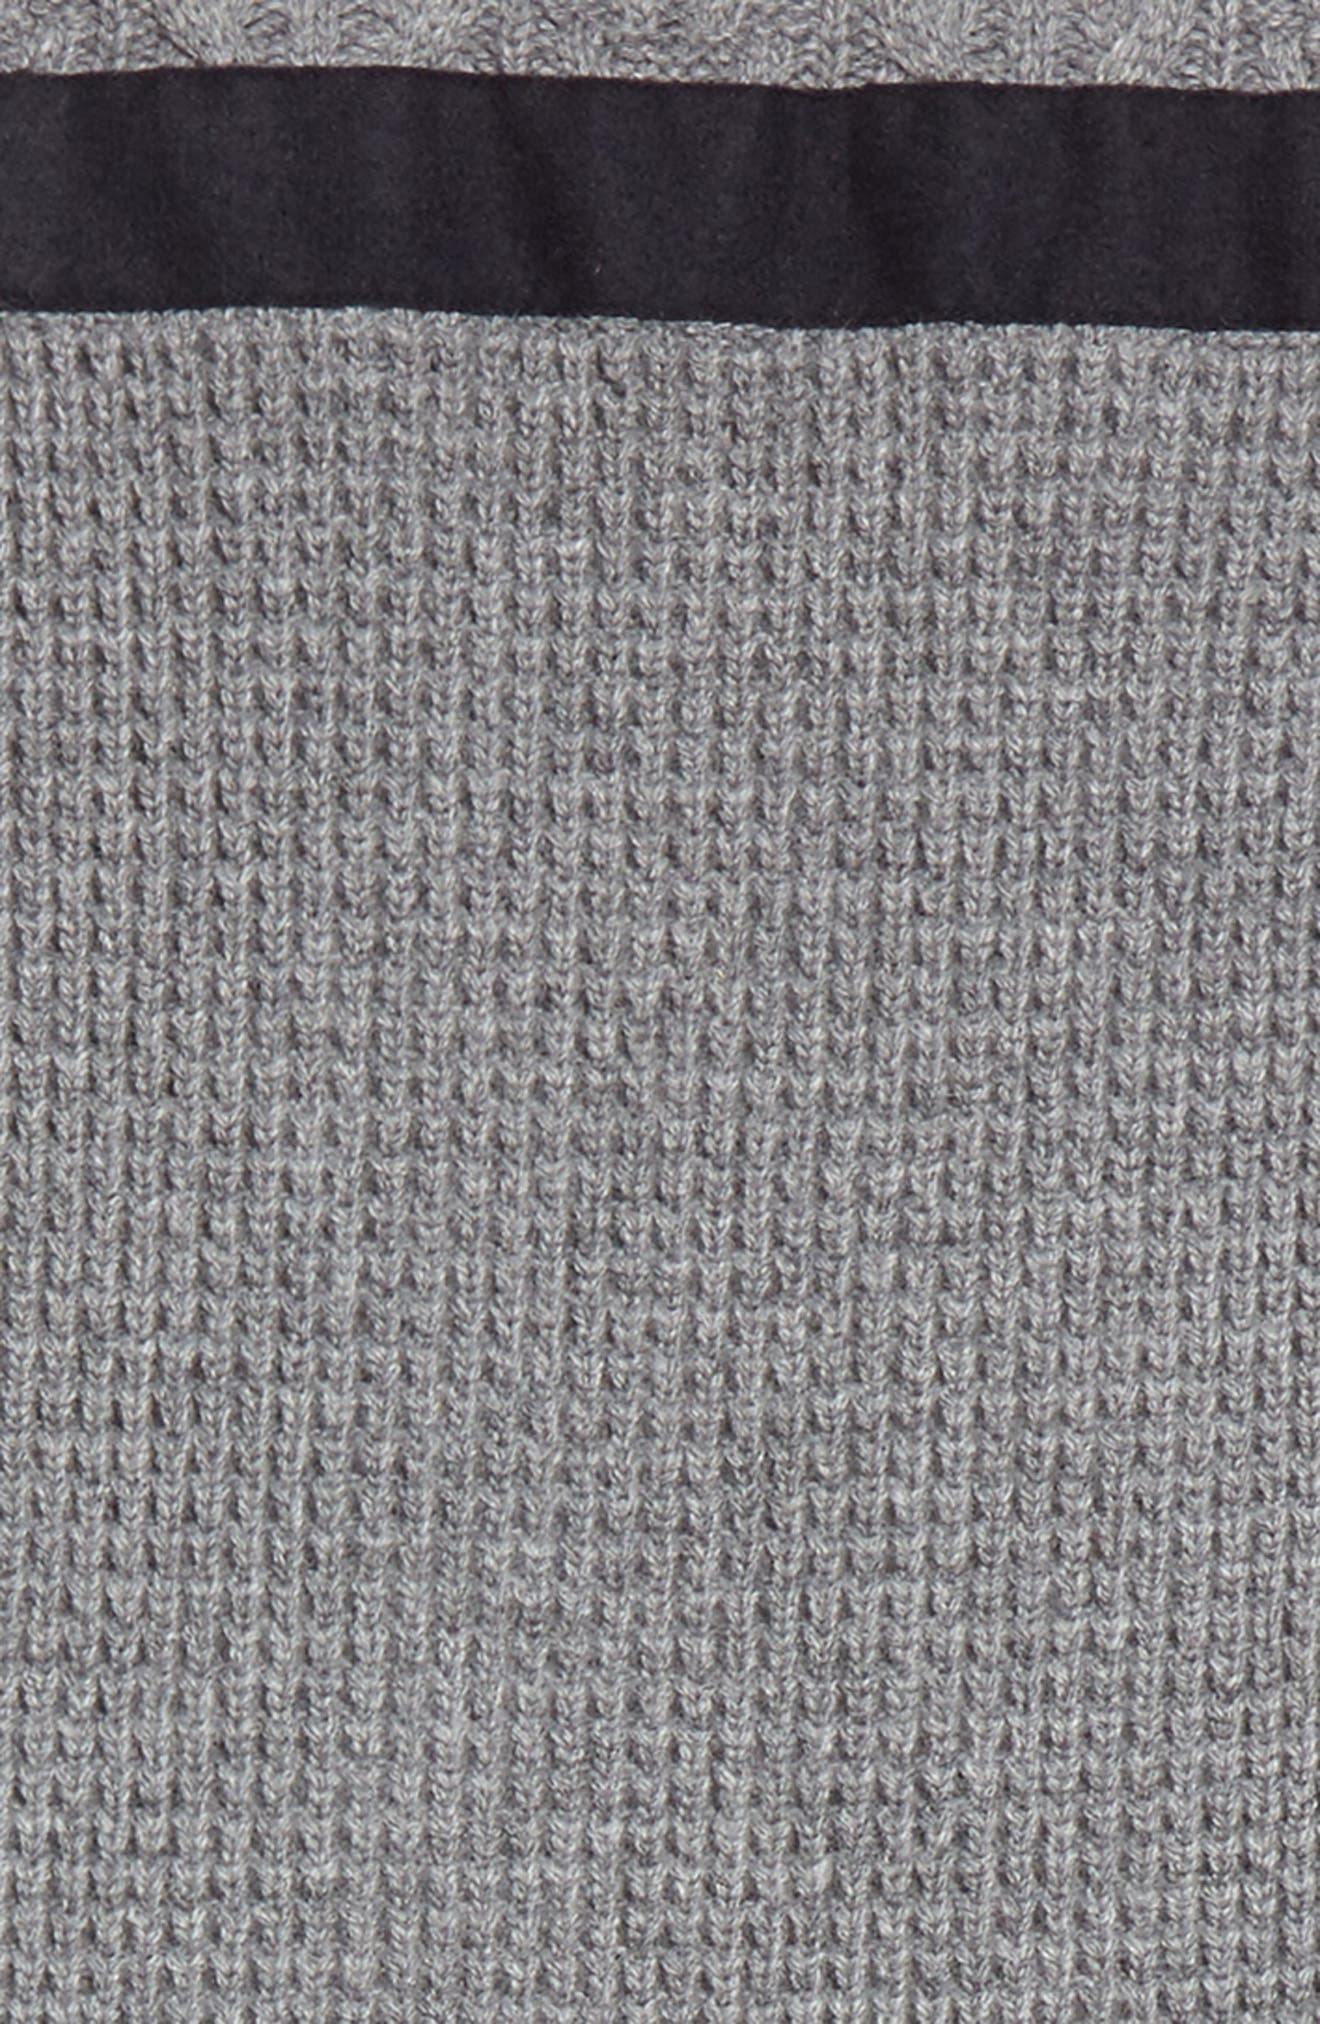 Textured Wool & Cashmere Scarf,                             Alternate thumbnail 2, color,                             Medium Grey